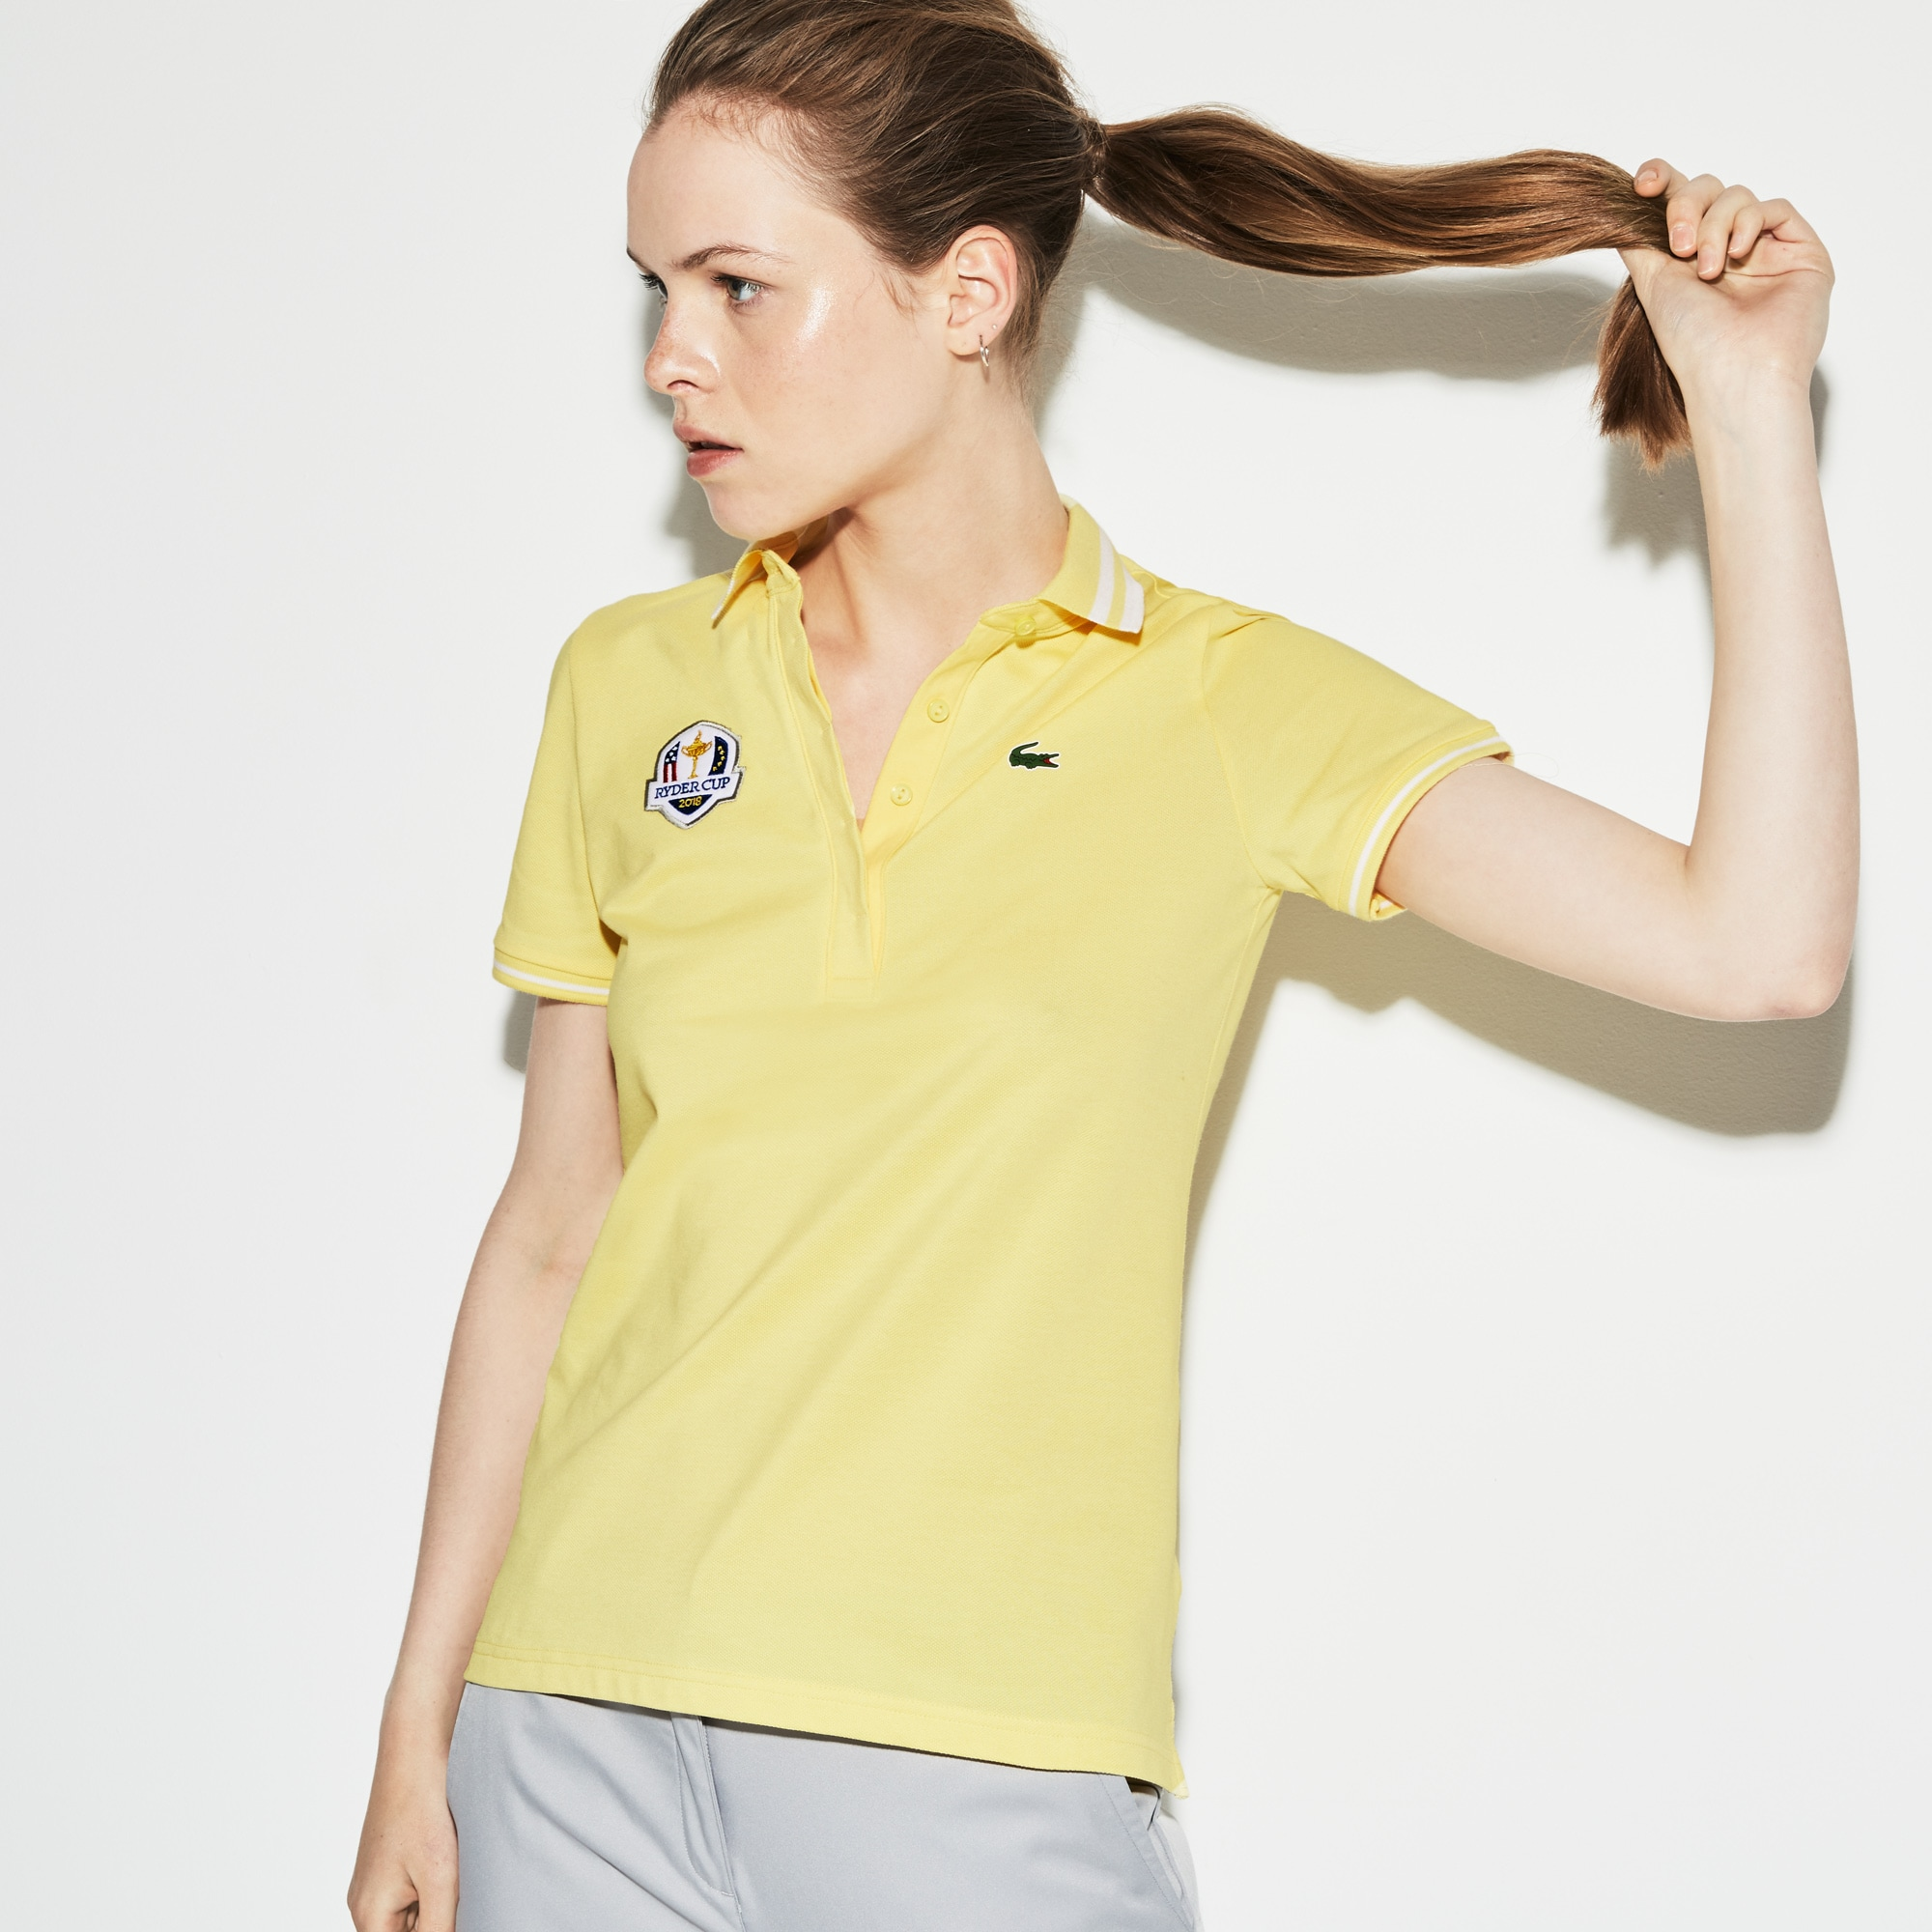 Women's Lacoste SPORT Ryder Cup Edition Tech Petit Piqué Golf Polo Shirt